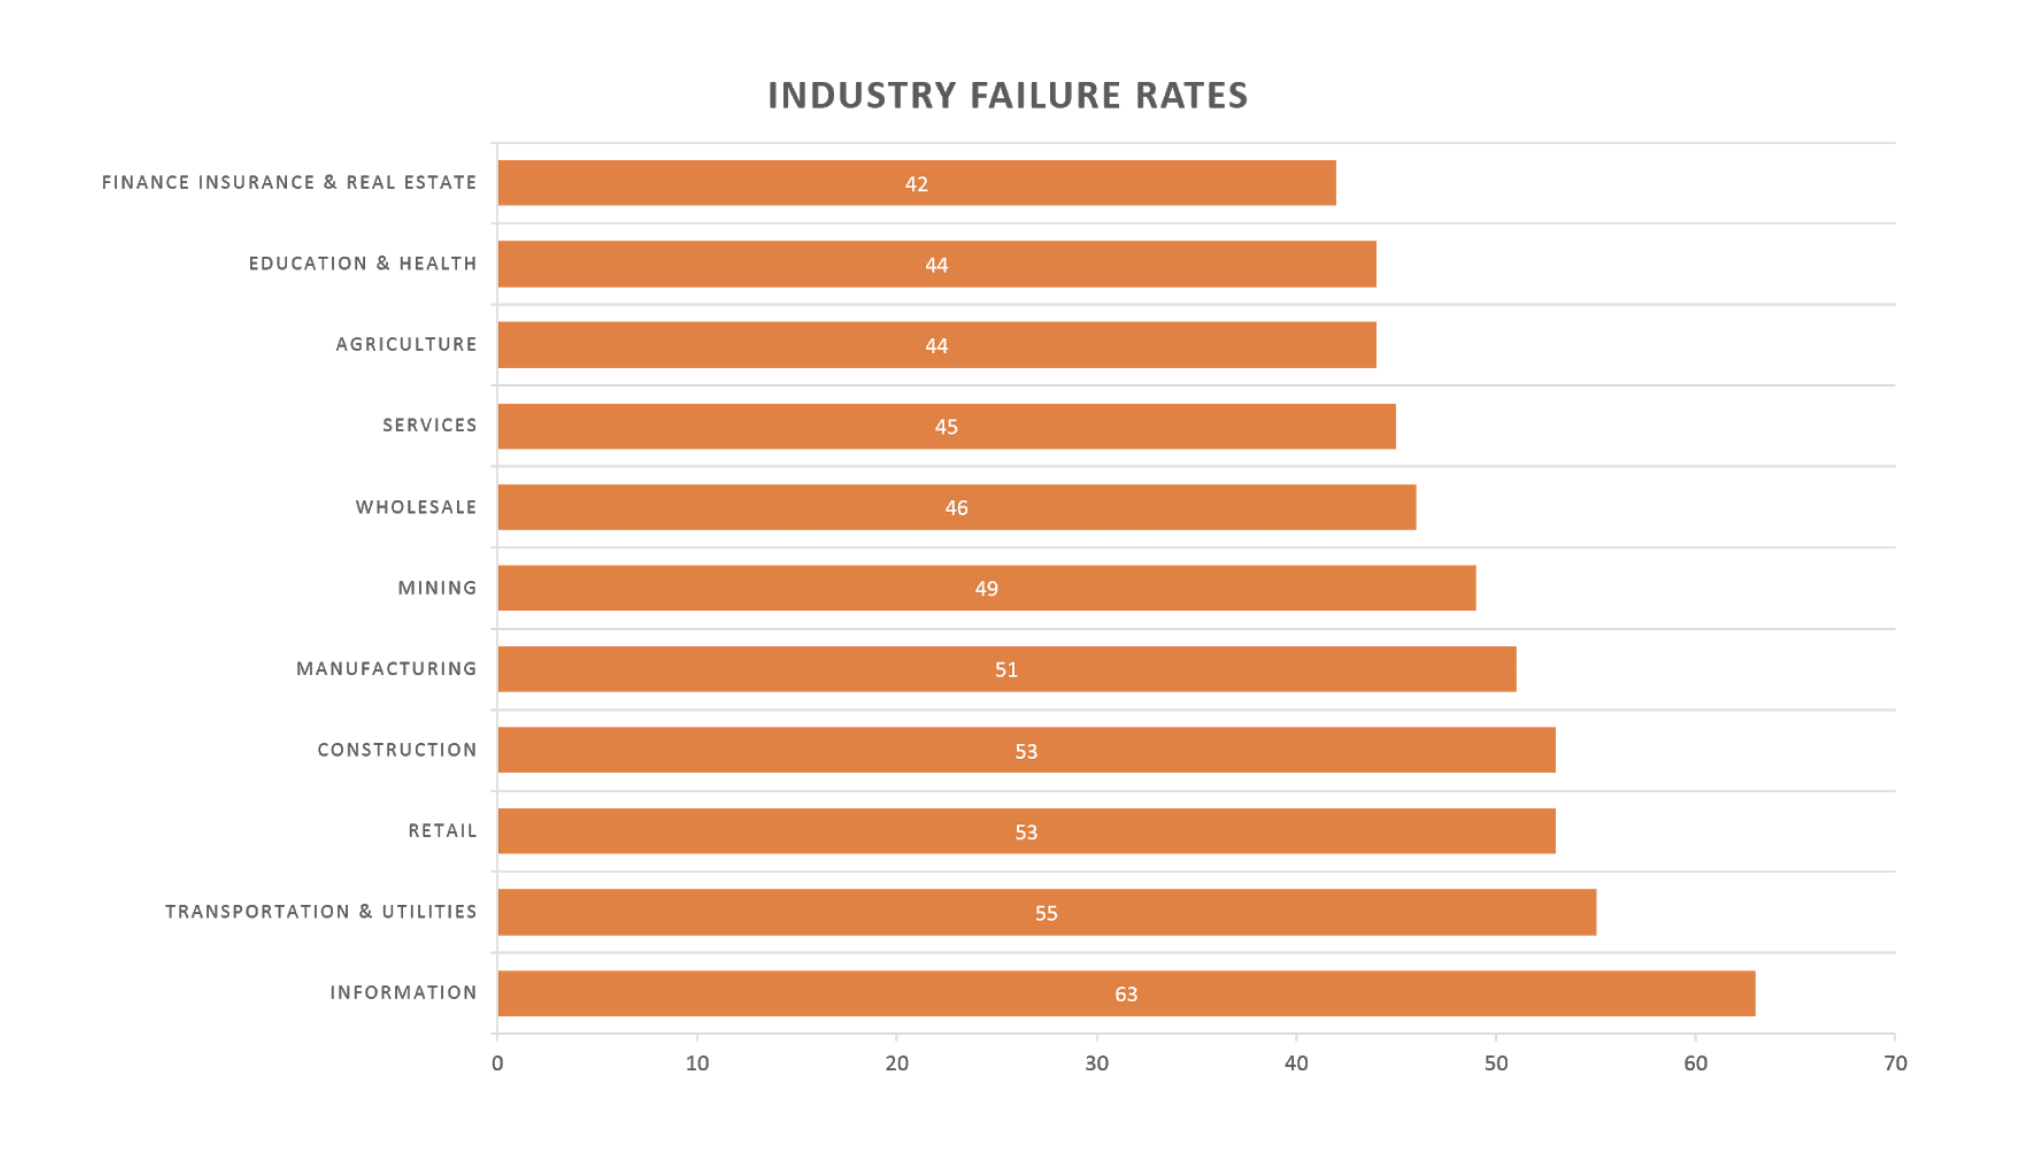 Industry failure rates